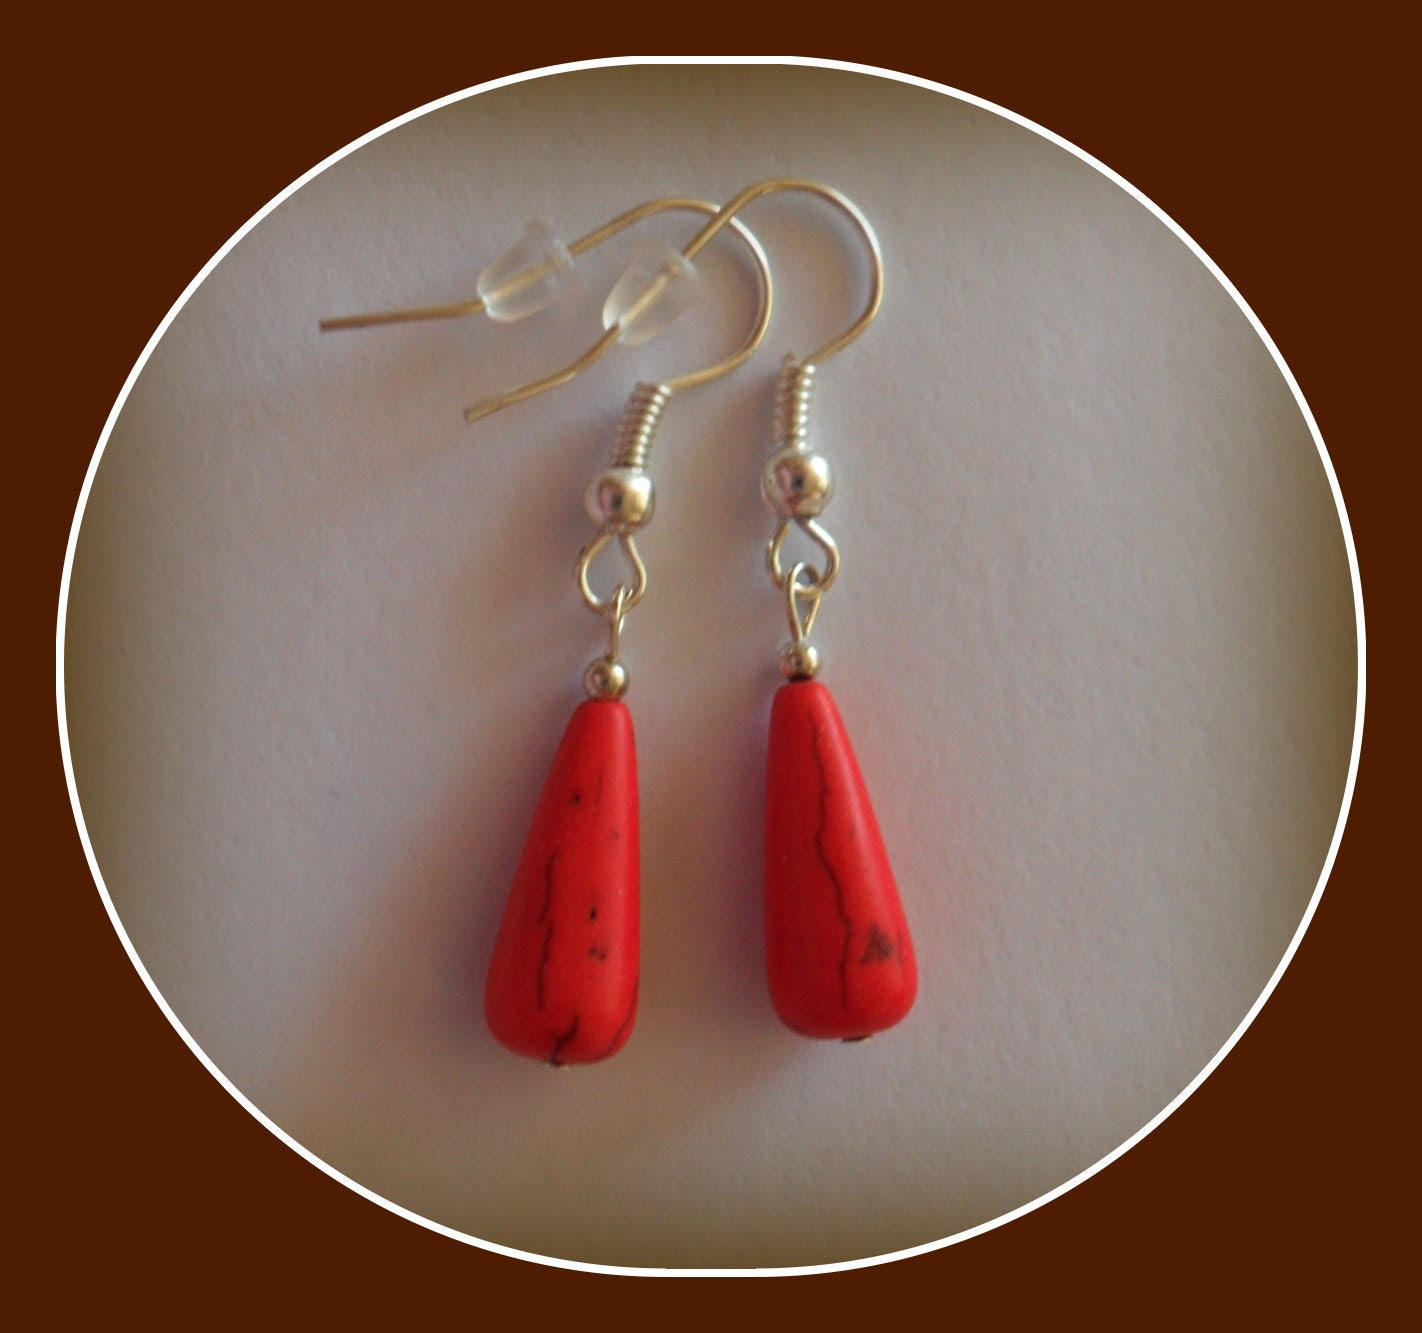 red gemstone earrings - Linskeslovelythings